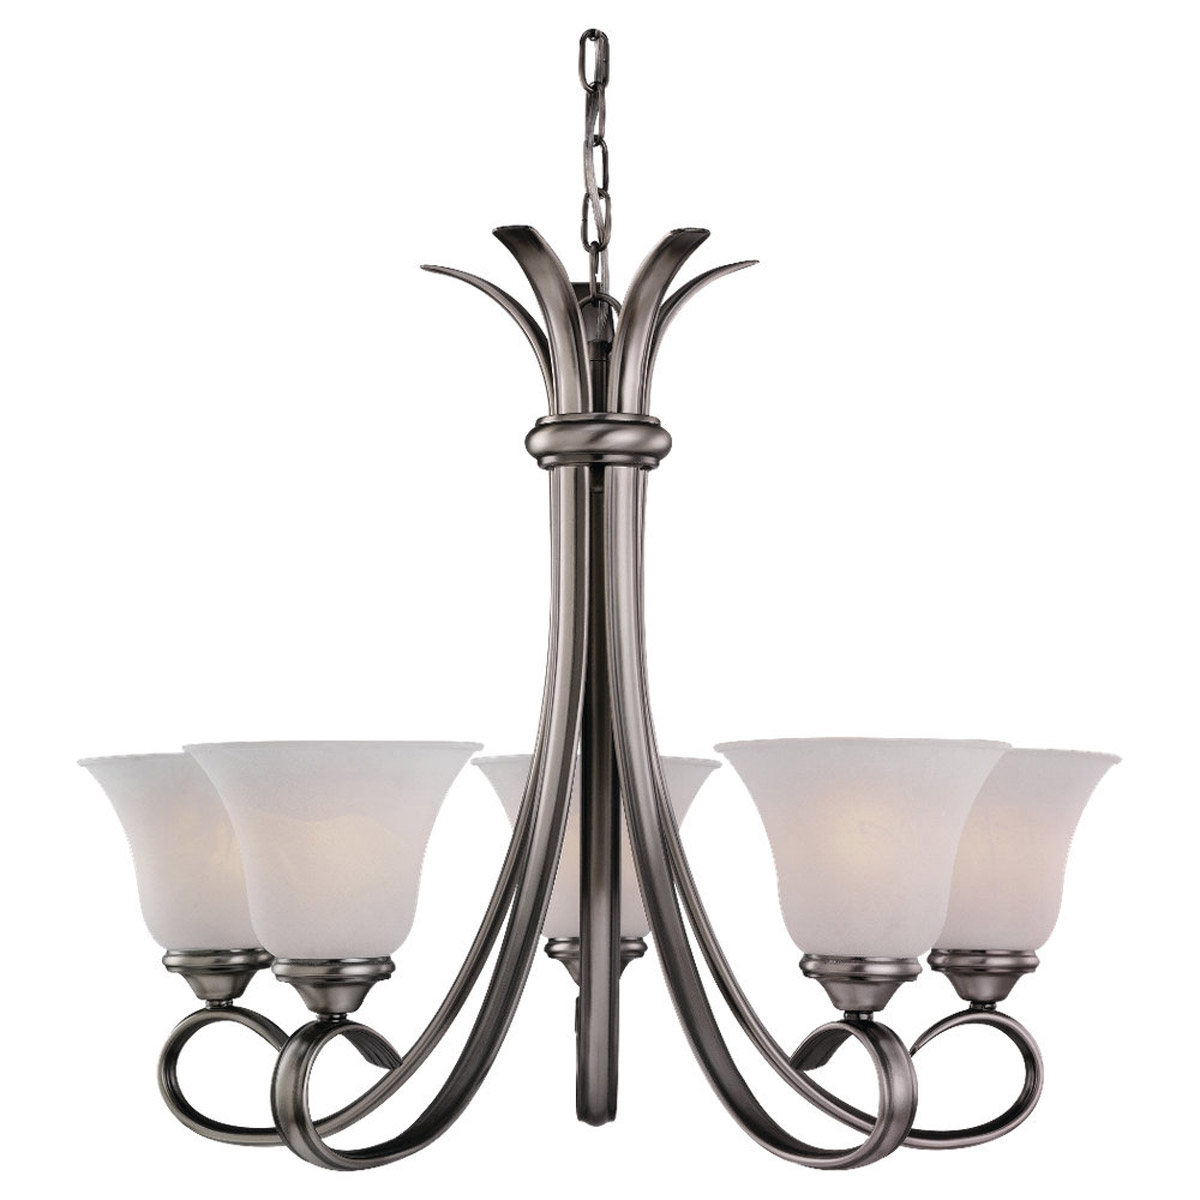 Sea Gull Lighting Rialto 5 Light Chandelier in Antique Brushed Nickel 31361-965 photo